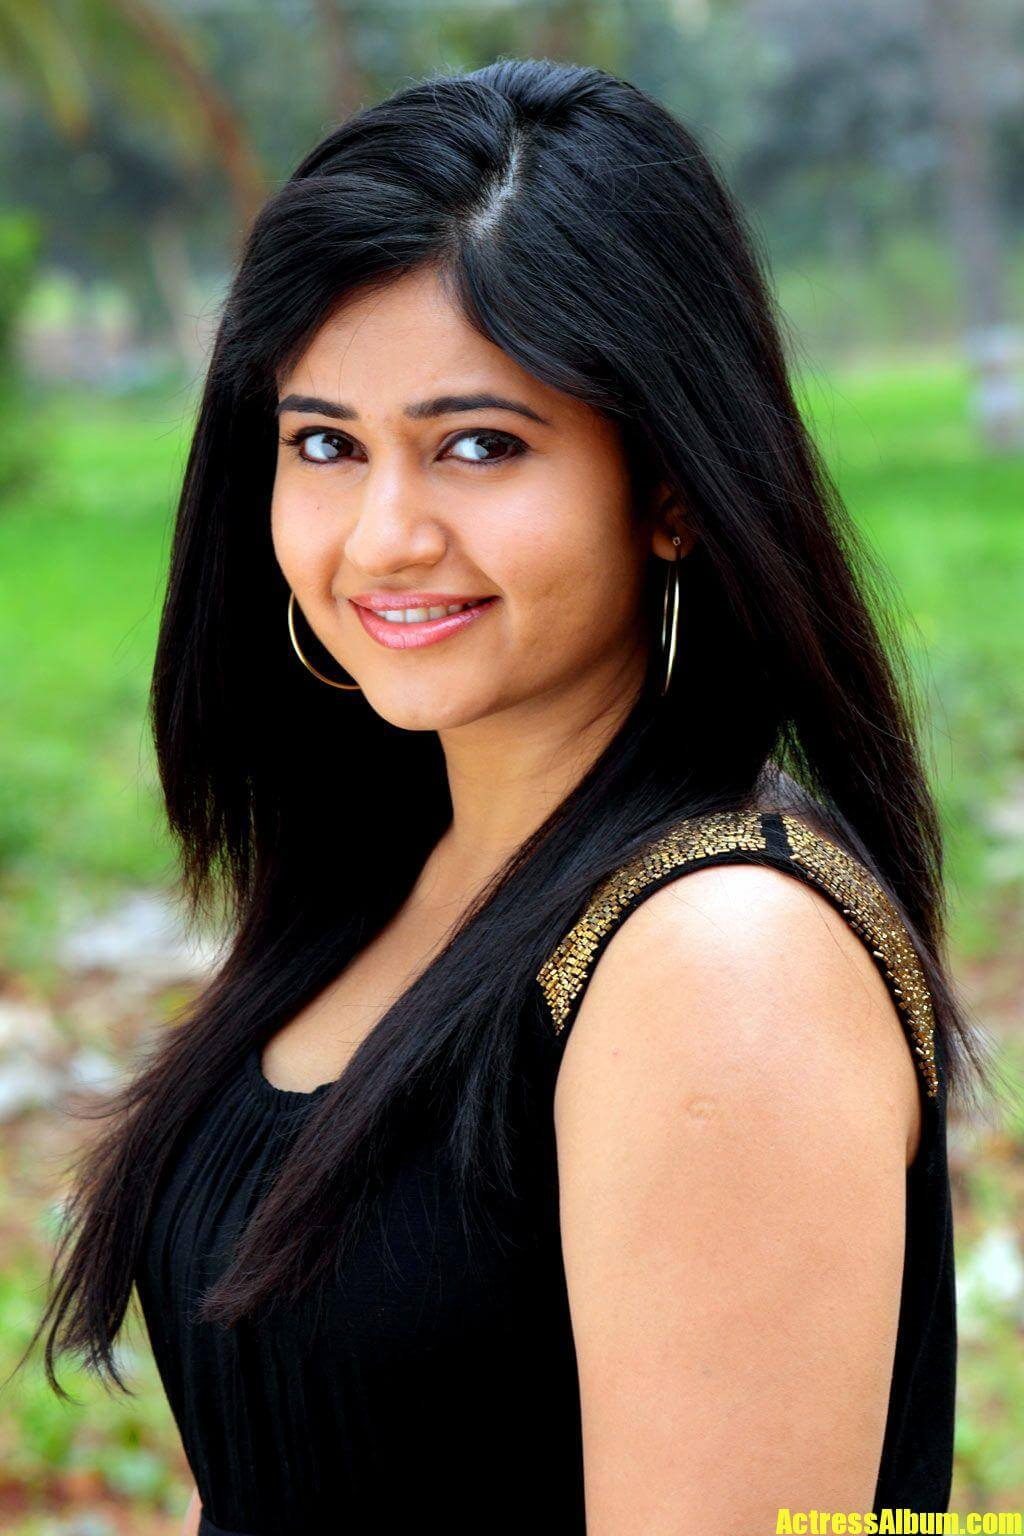 Poonam Bajwa Face Closeup Pics In Black Dress - Actress Album